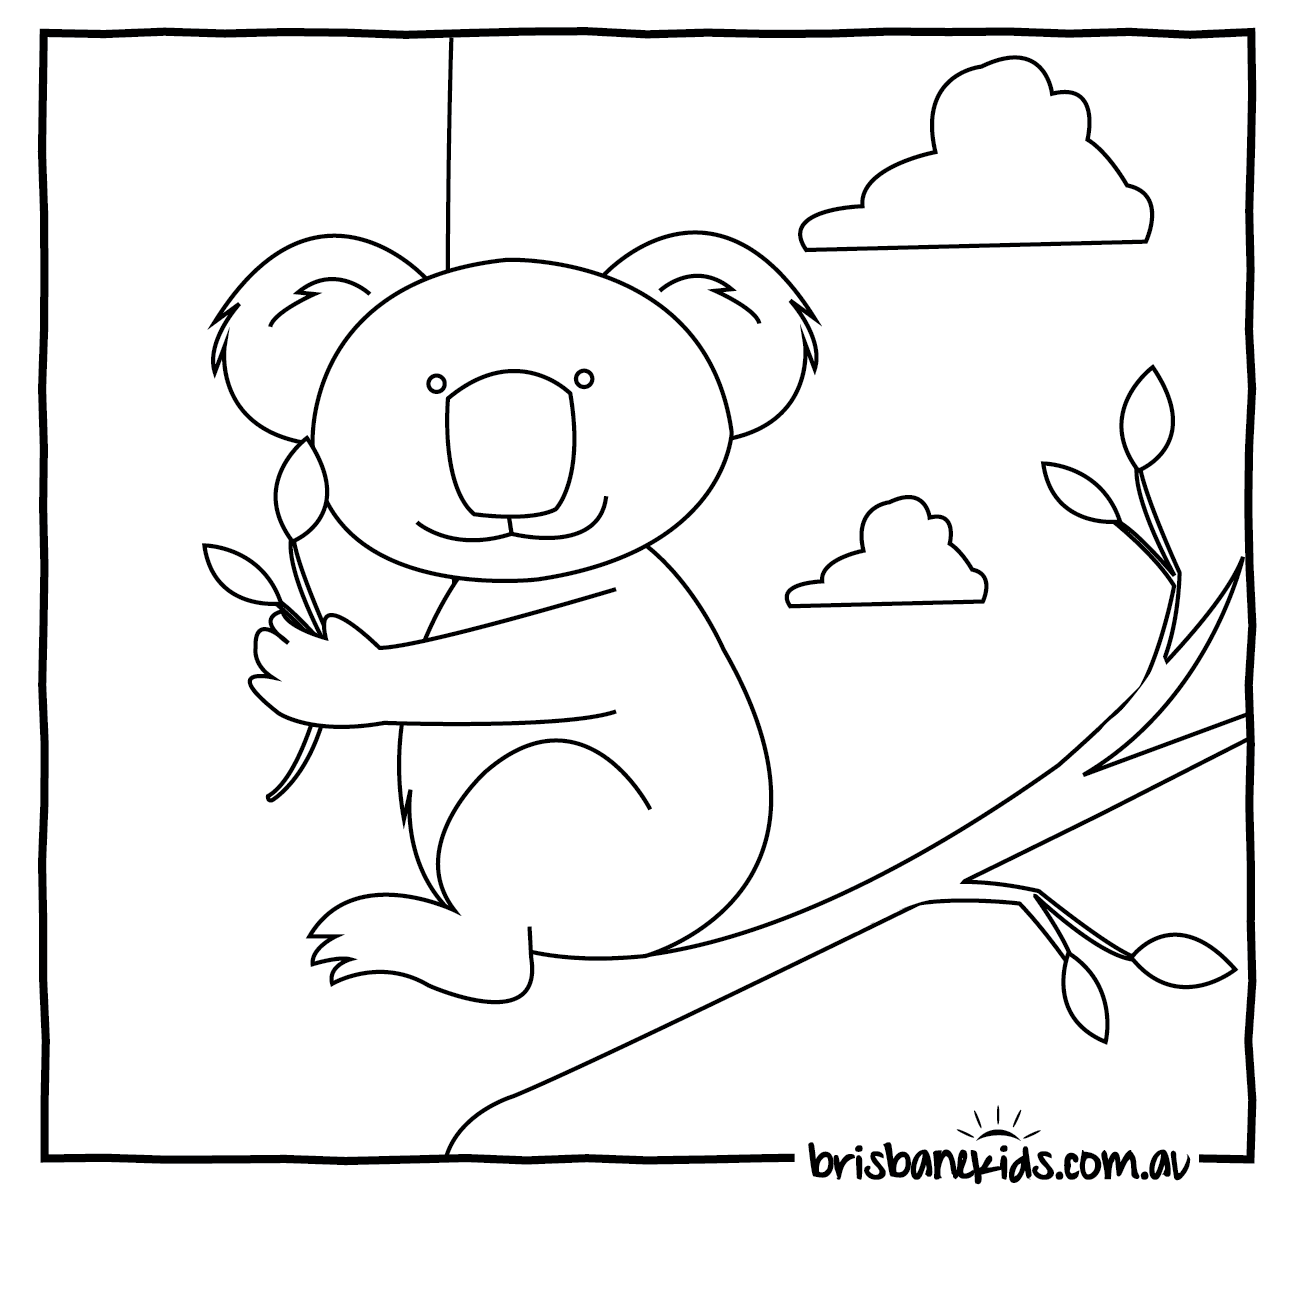 Printable coloring pages koala - Australian Animals Colouring Pages